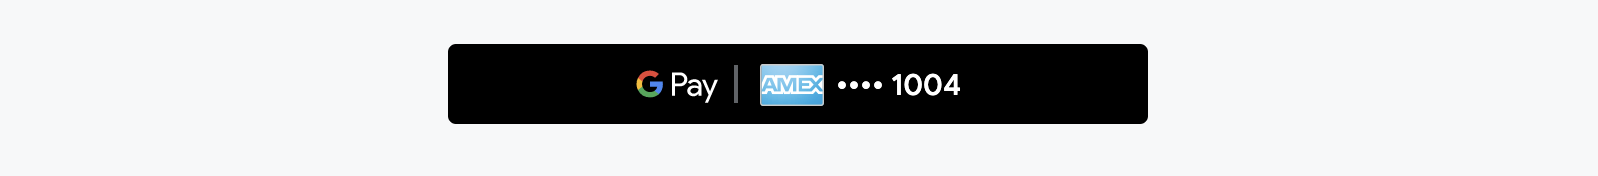 G_Pay_Button.png